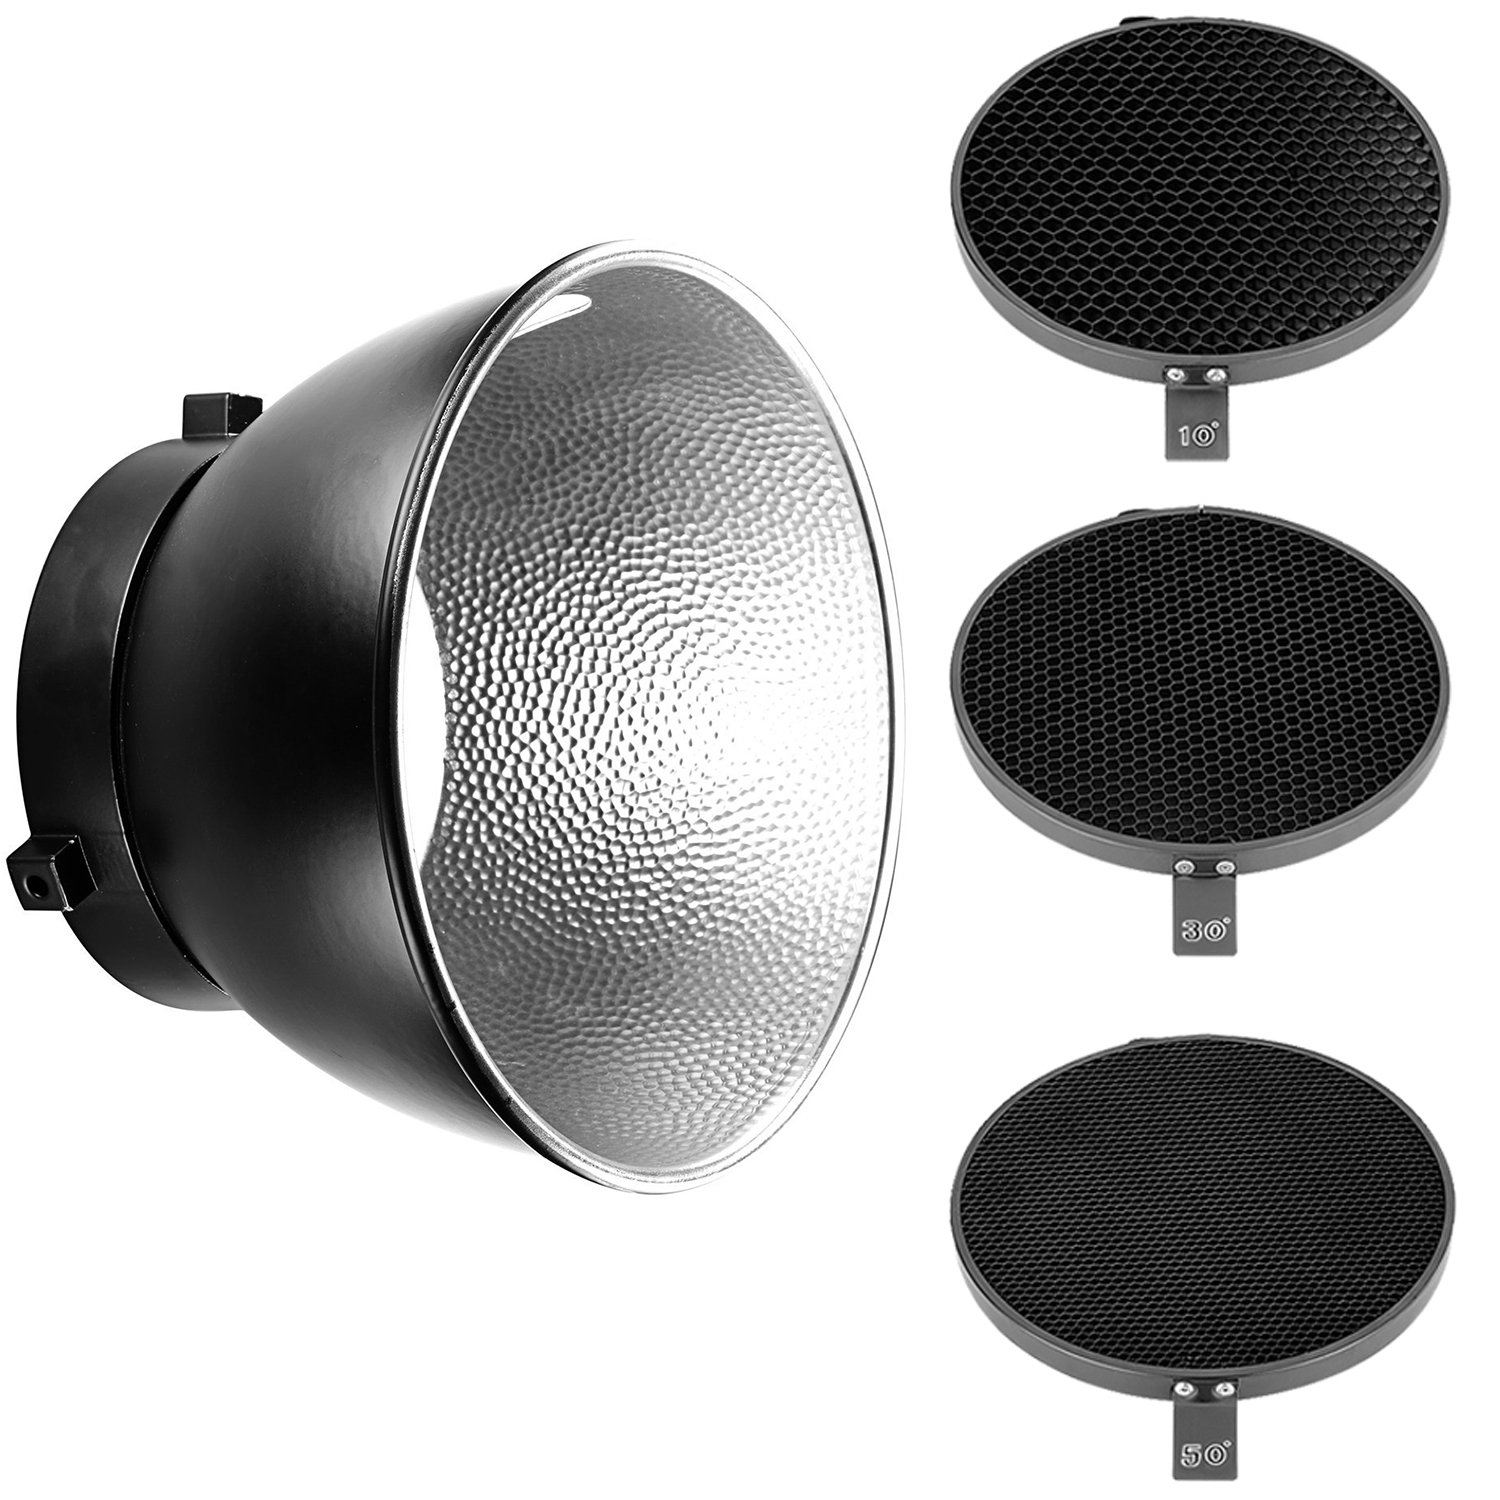 Neewer 7inch/ 18cm Standard Reflector Diffuser with 10/30/50 Degree Honeycomb Grid for Bowens Mount Studio Light Strobe Flash